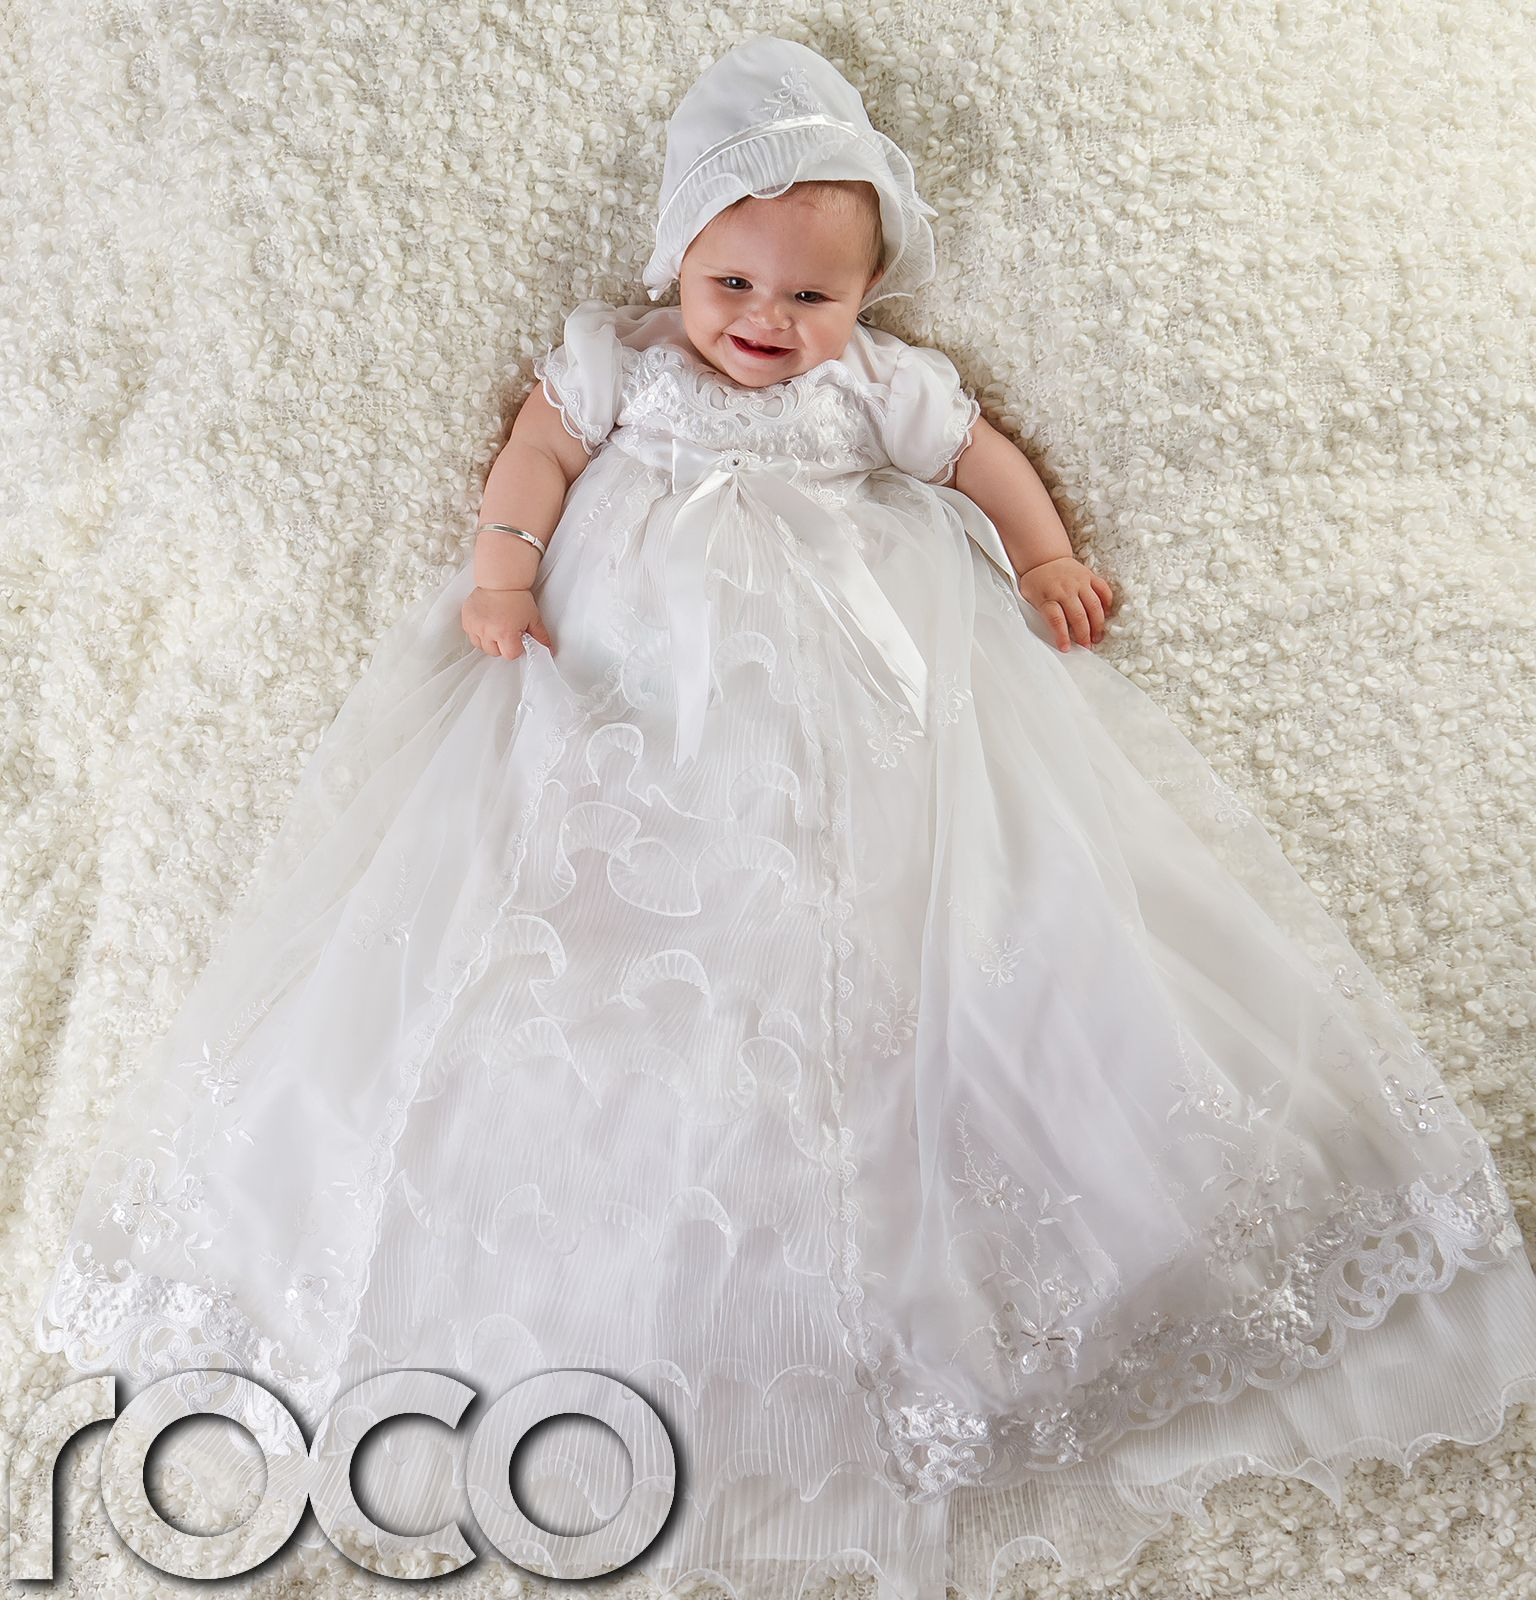 Girls White Dress Traditional Baptism Gown Christening Dresses 0 ...